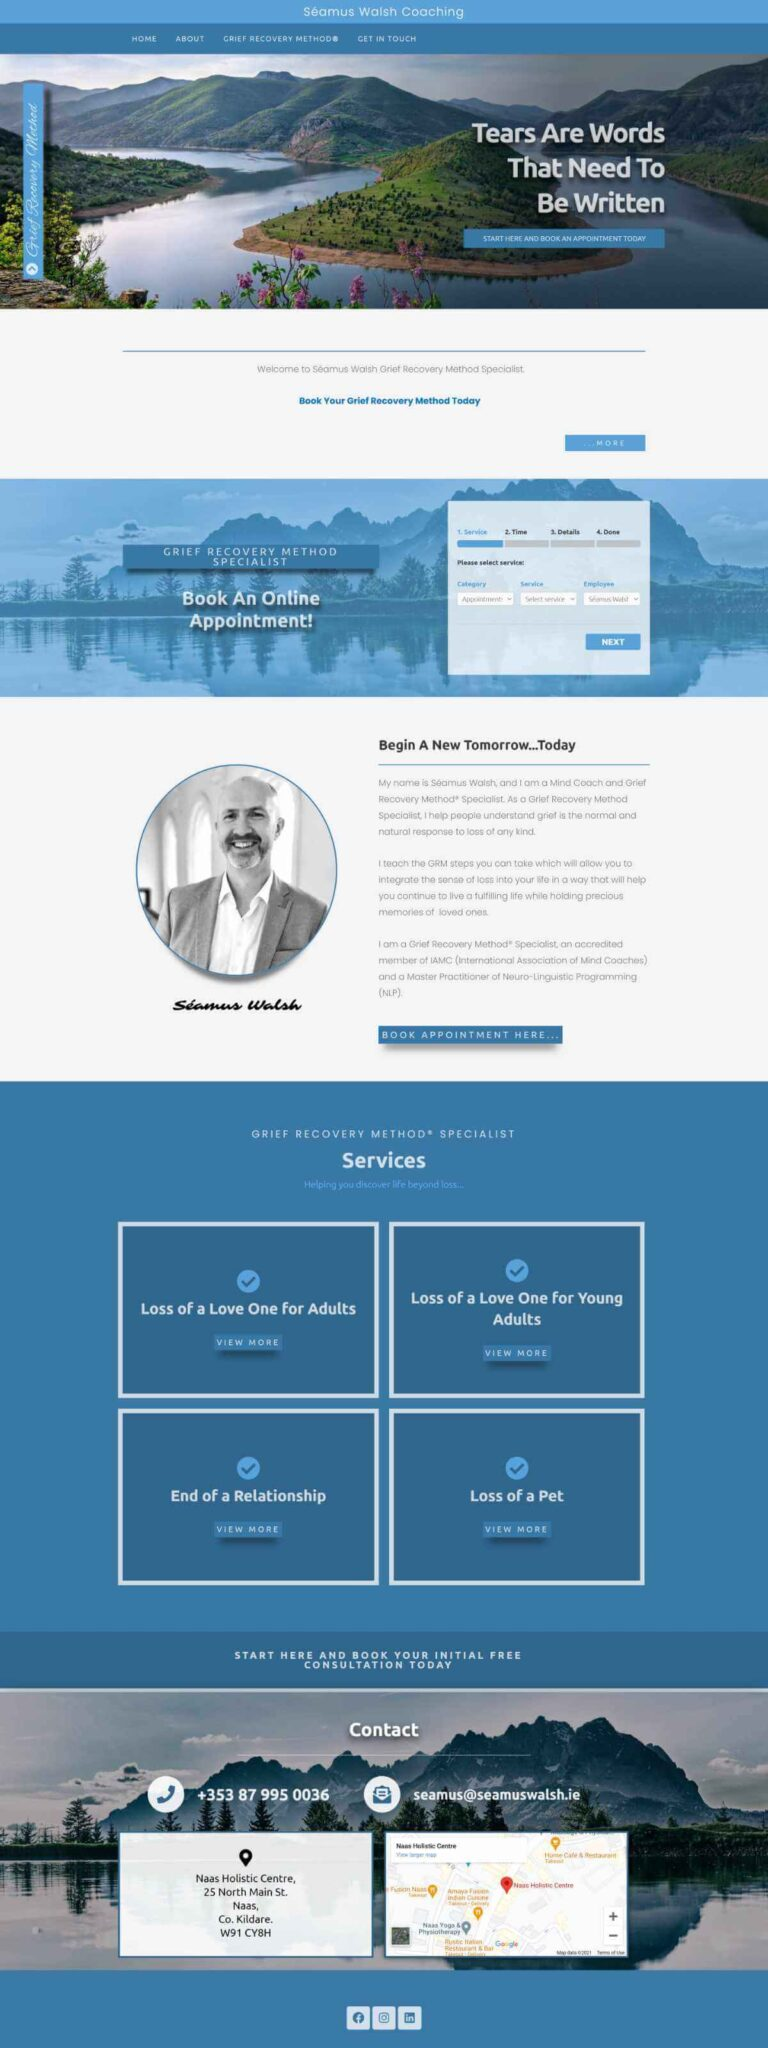 Seamuswalsh Coaching Website Design - Home